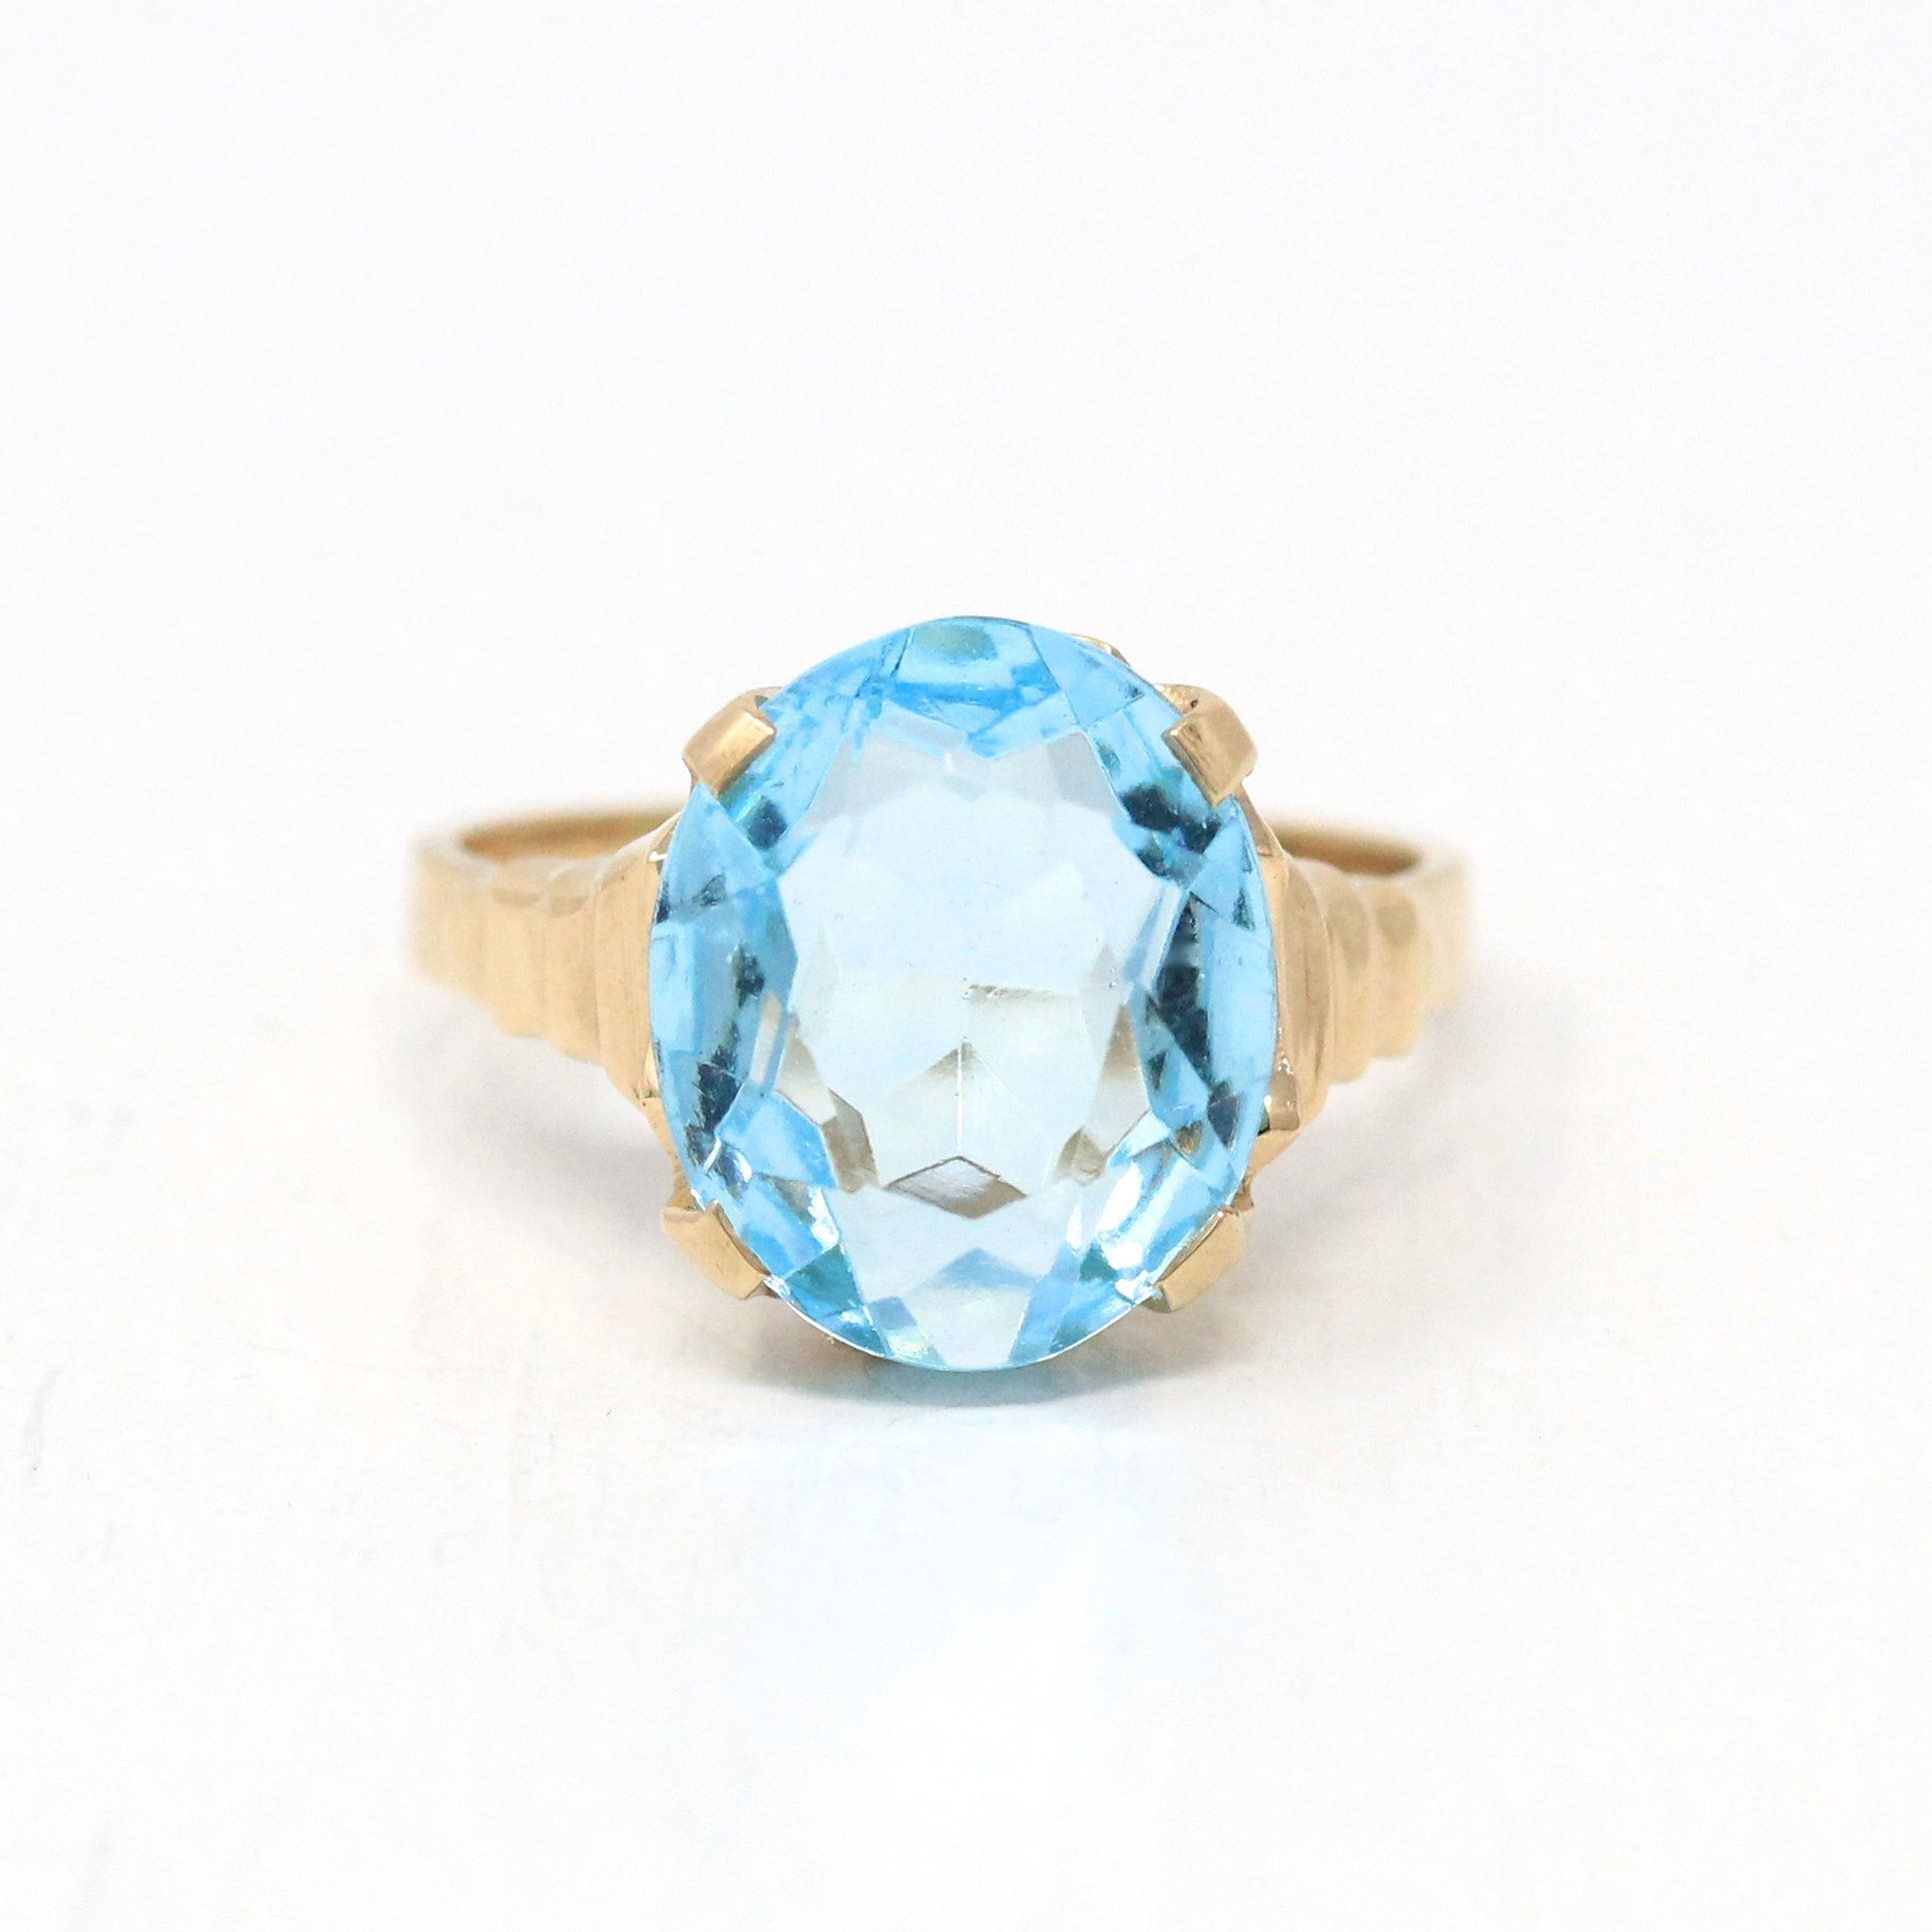 Sale Blue Stone Ring Vintage 10k Yellow Gold 1940s Etsy In 2020 Antique Rings Vintage Mid Century Jewelry Blue Stone Ring